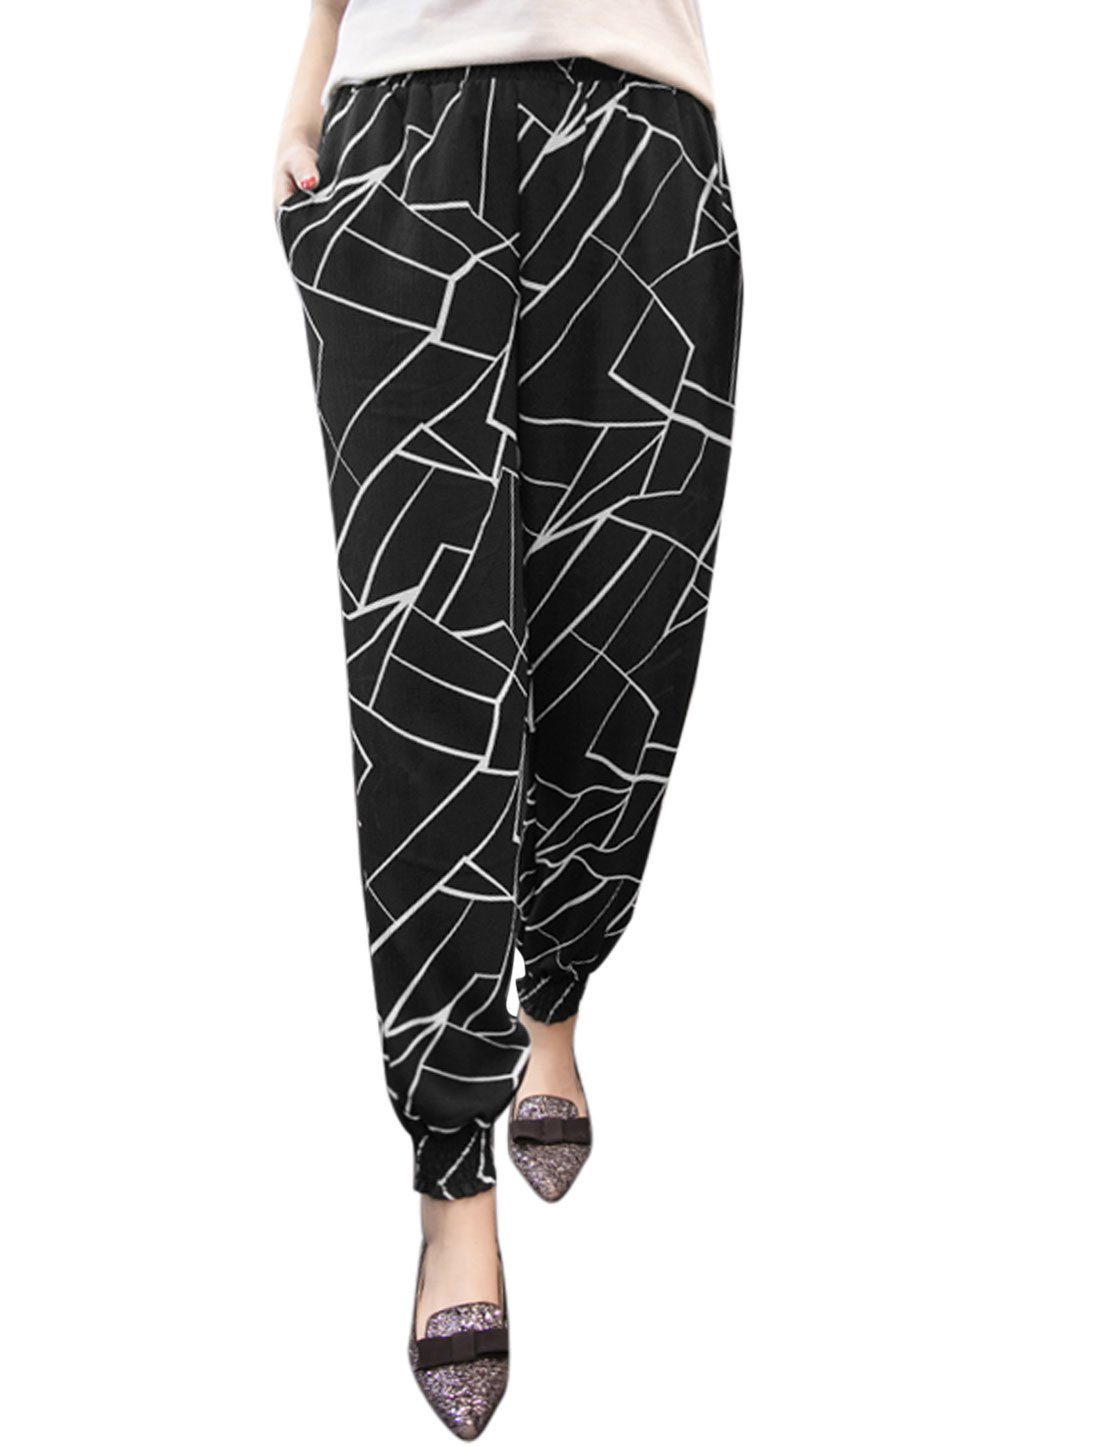 uxcell Women Shattered Glass Prints Tapered Cropped Pants Black M